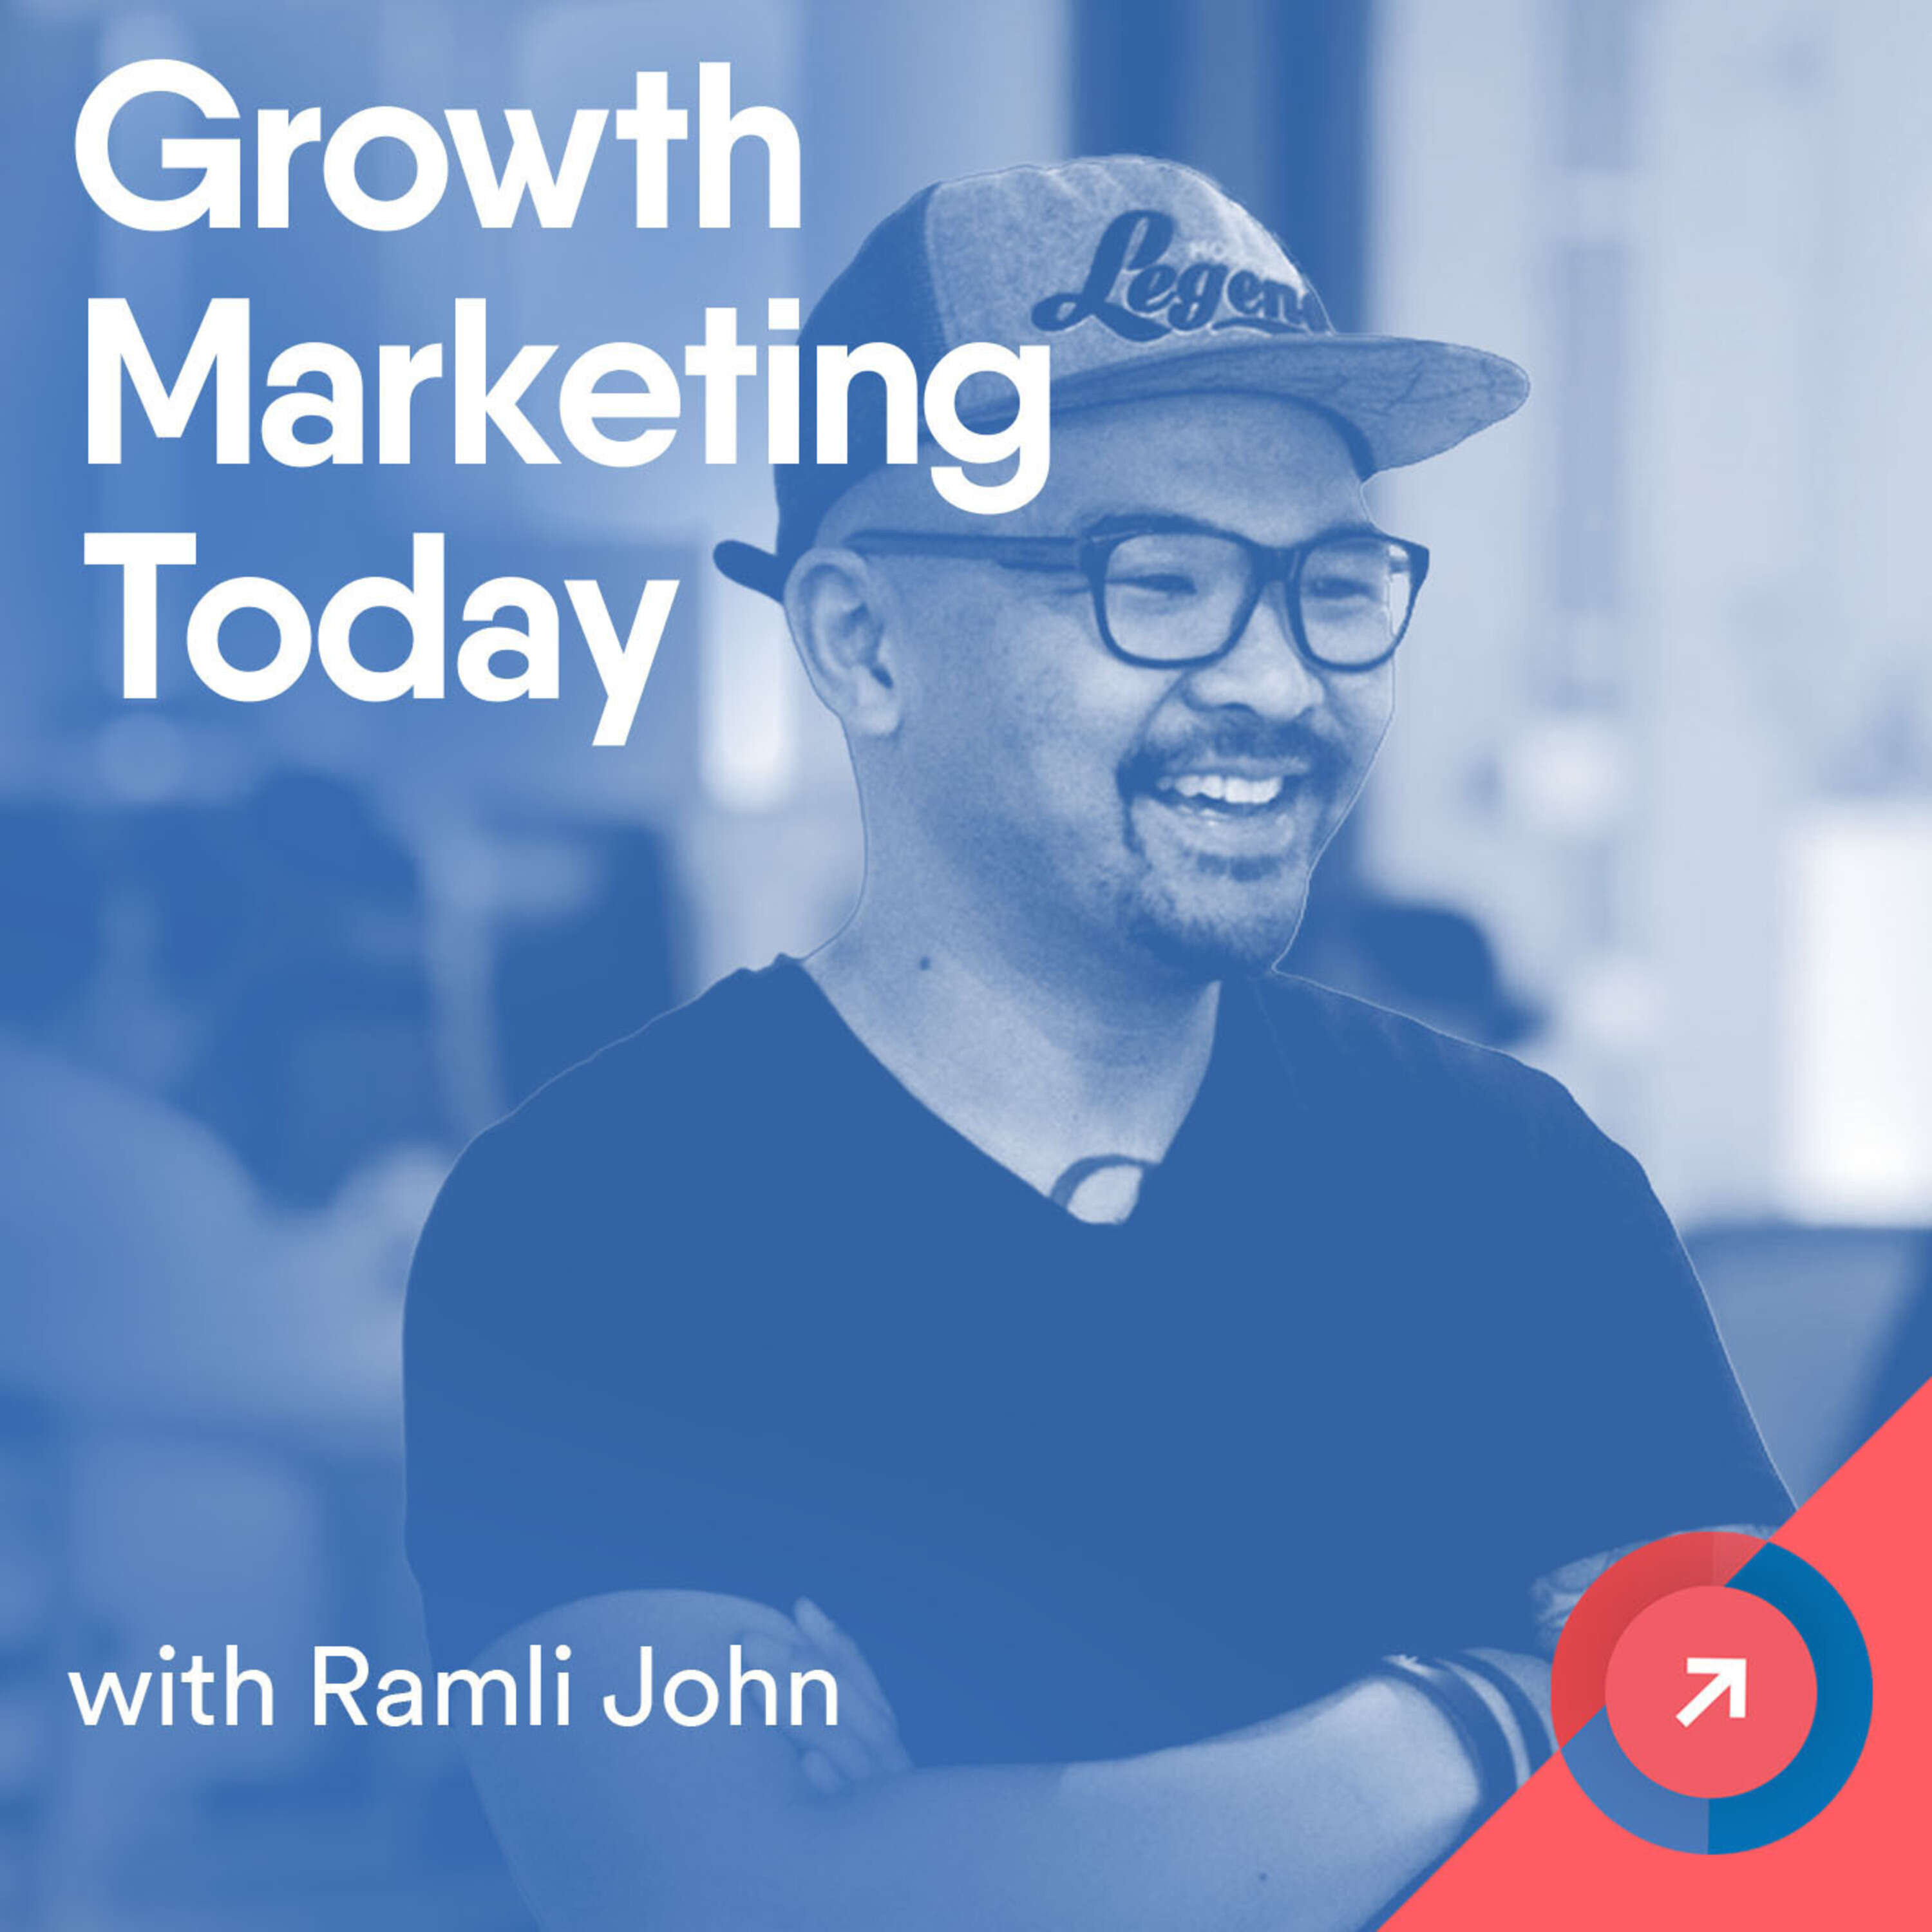 Growth Marketing Today